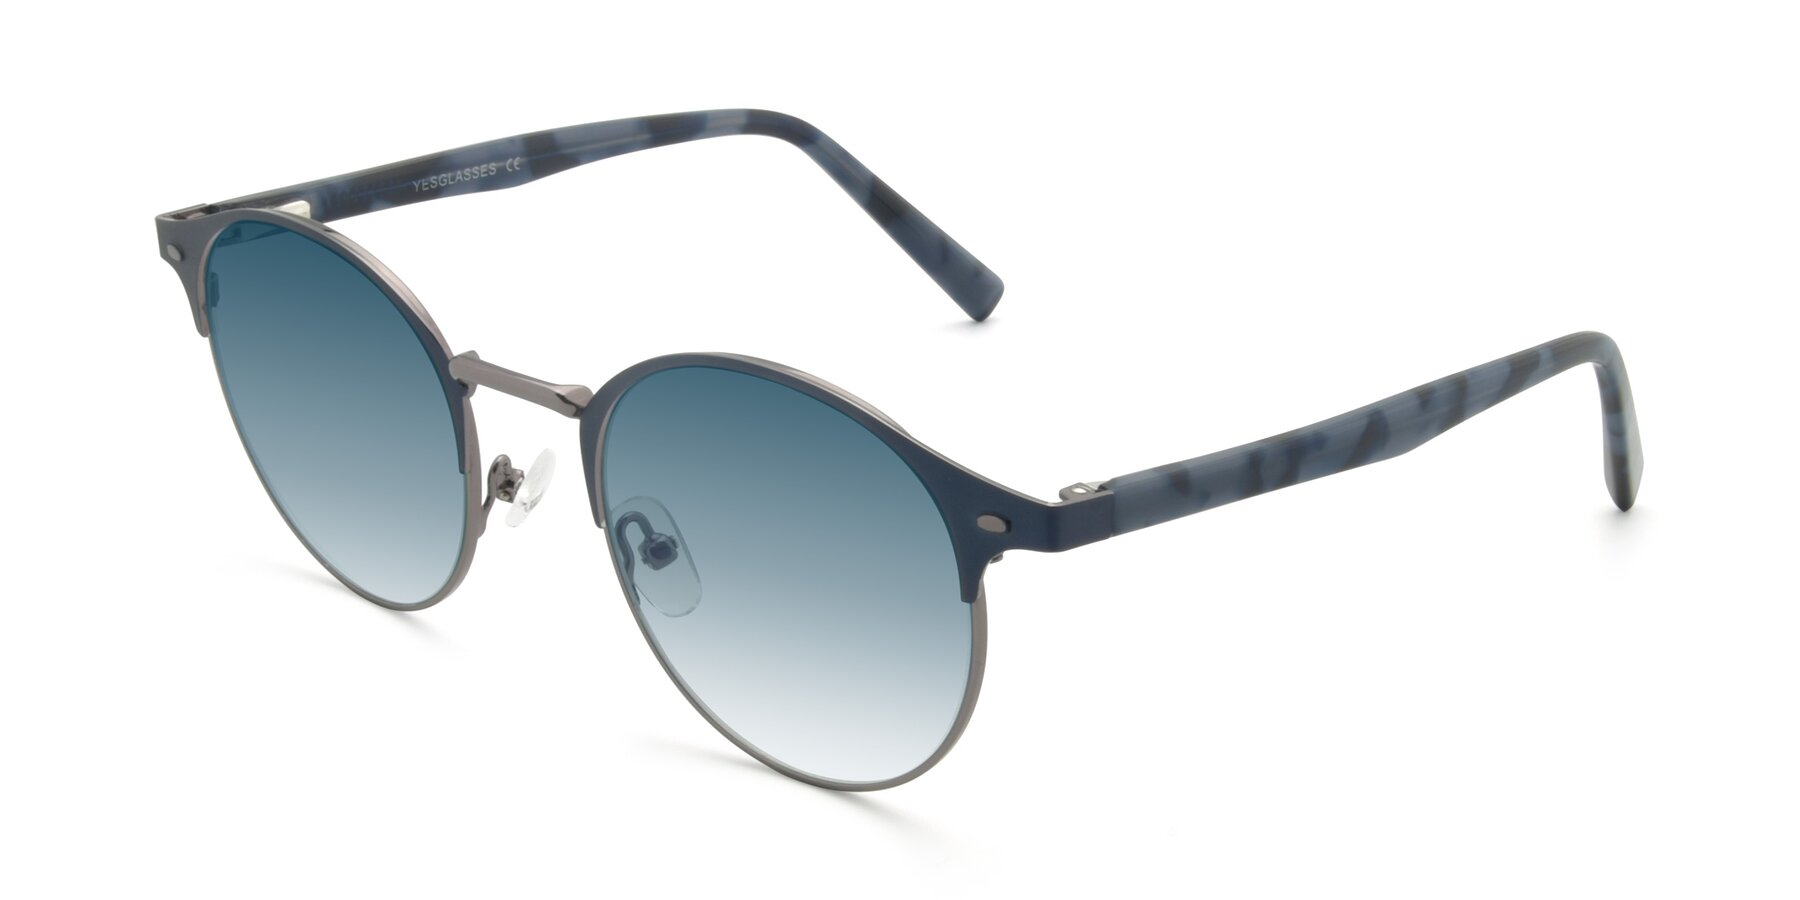 Angle of 9099 in Blue-Gunmetal with Blue Gradient Lenses